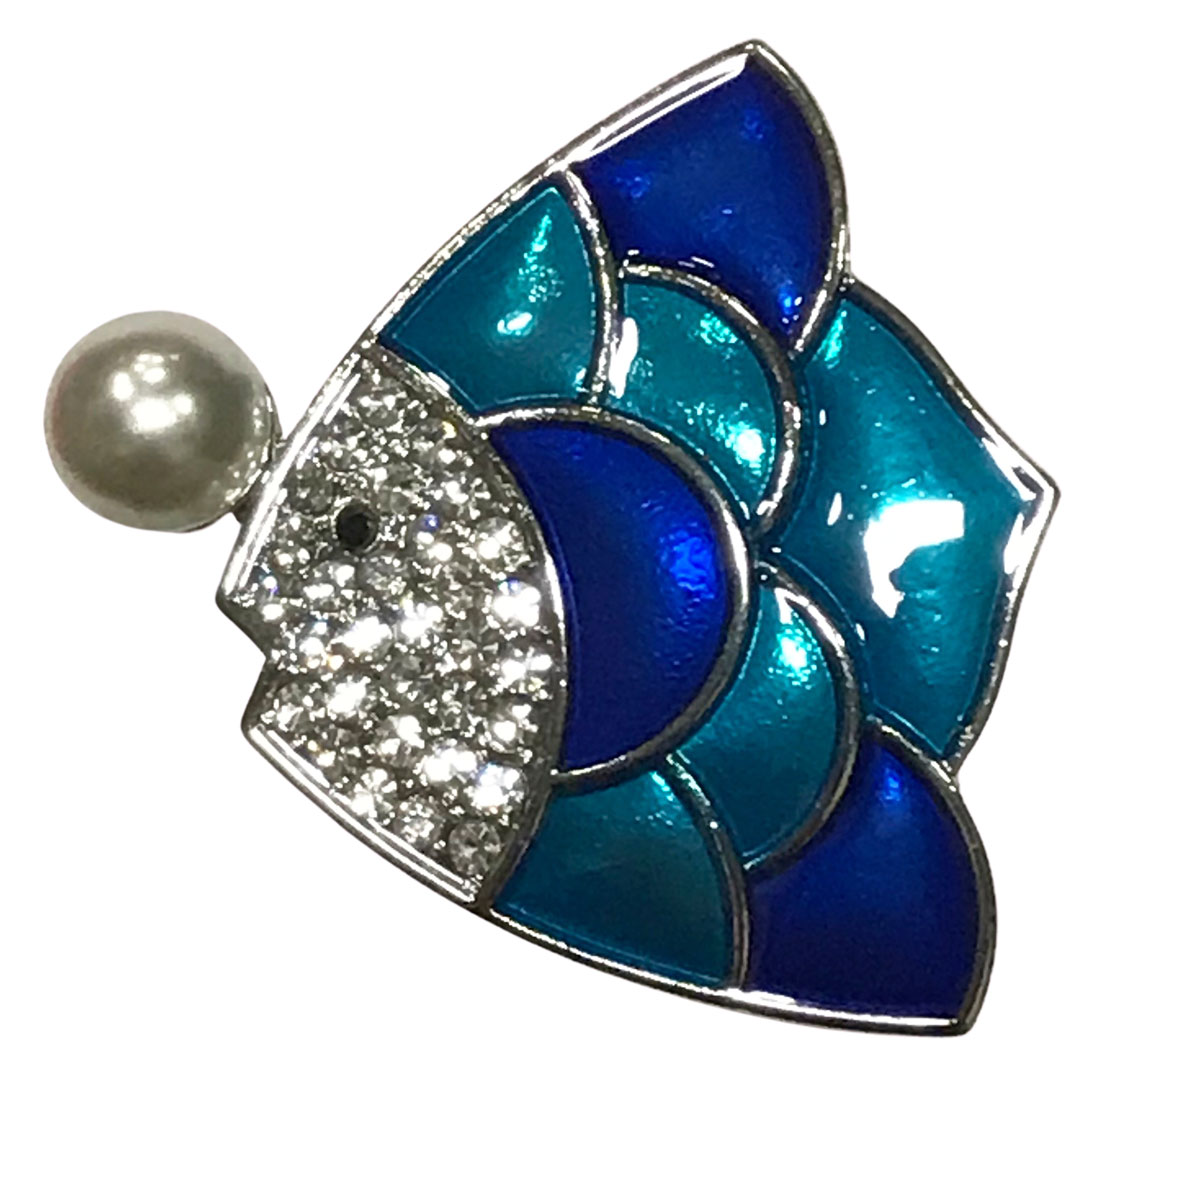 Magnetic Brooches - Artful Design - Plain Back - #620 Sunfish with Pearl Magnetic Brooch